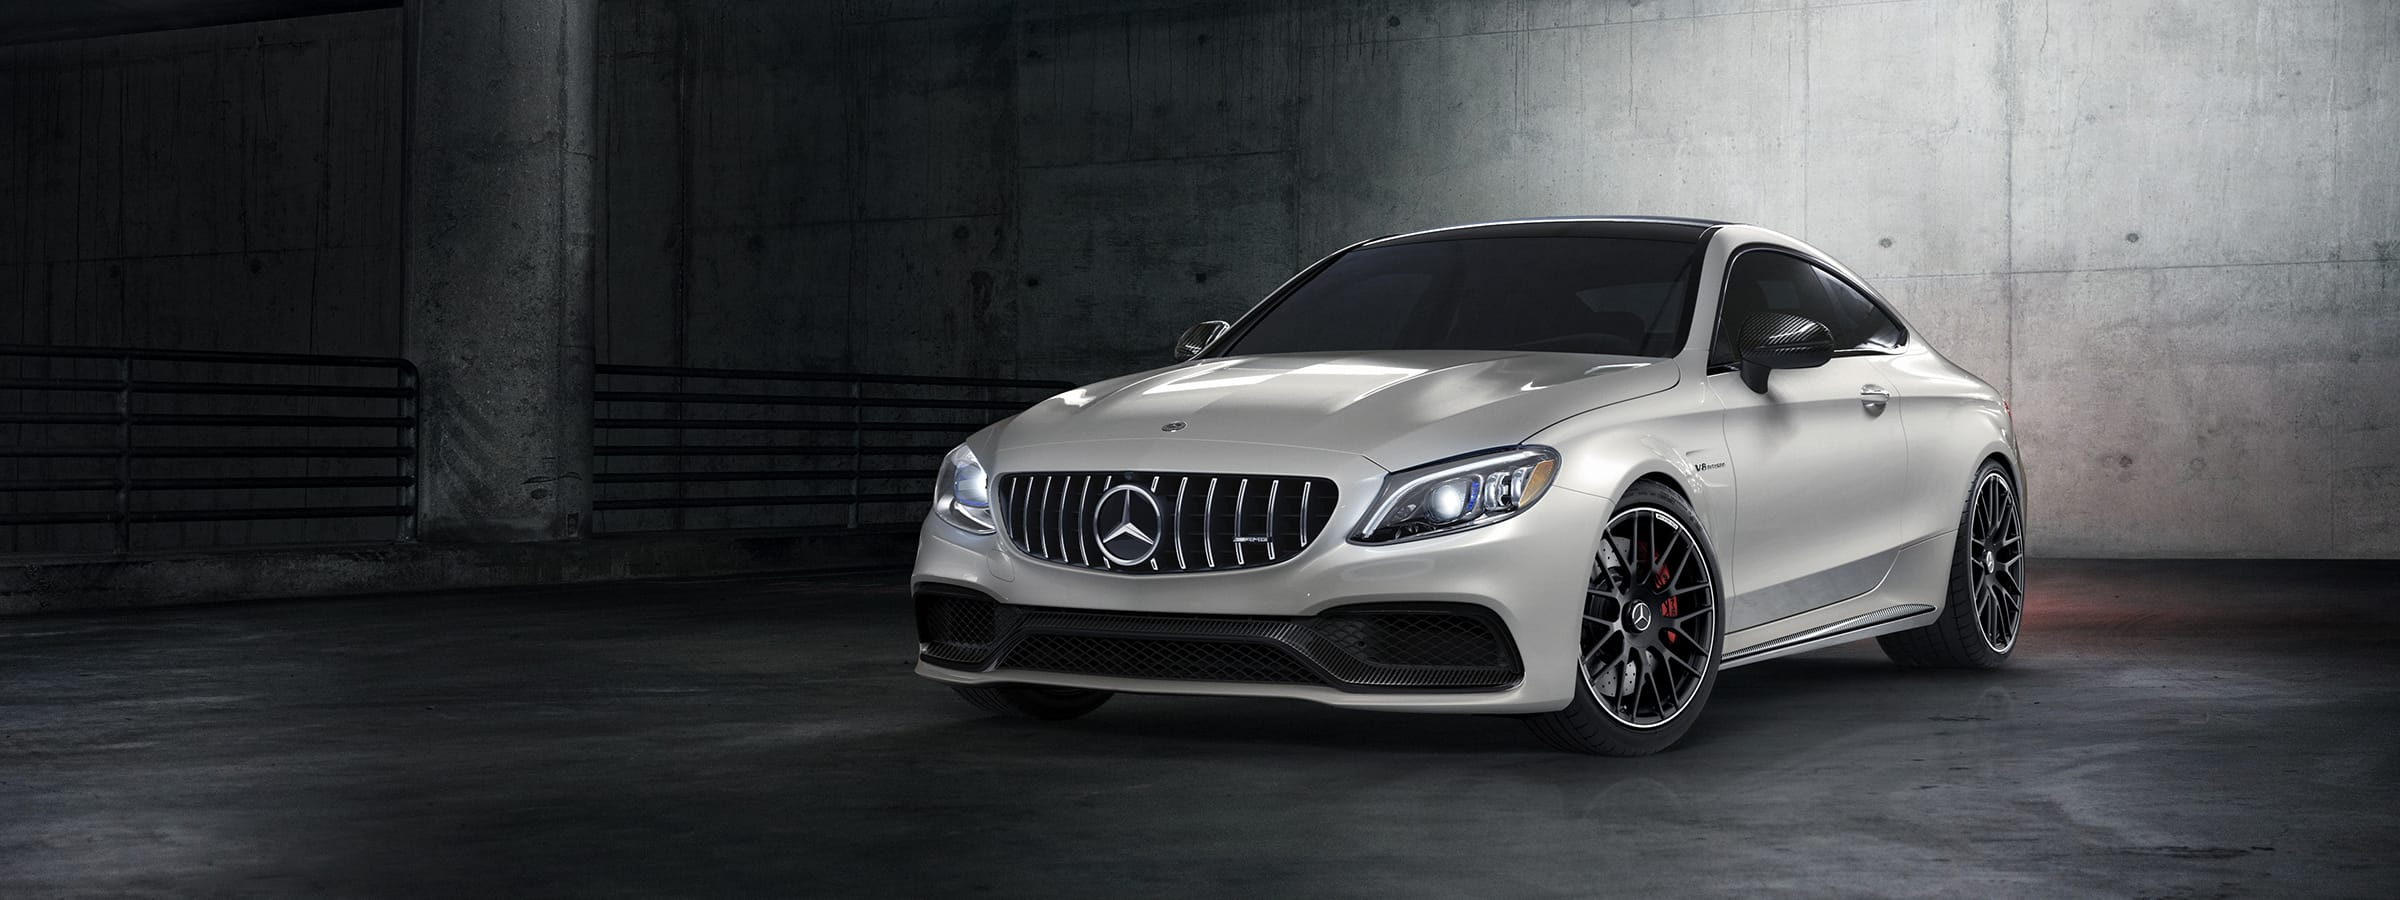 Mercedes Amg 2019 Mercedes Amg C Class Coupe